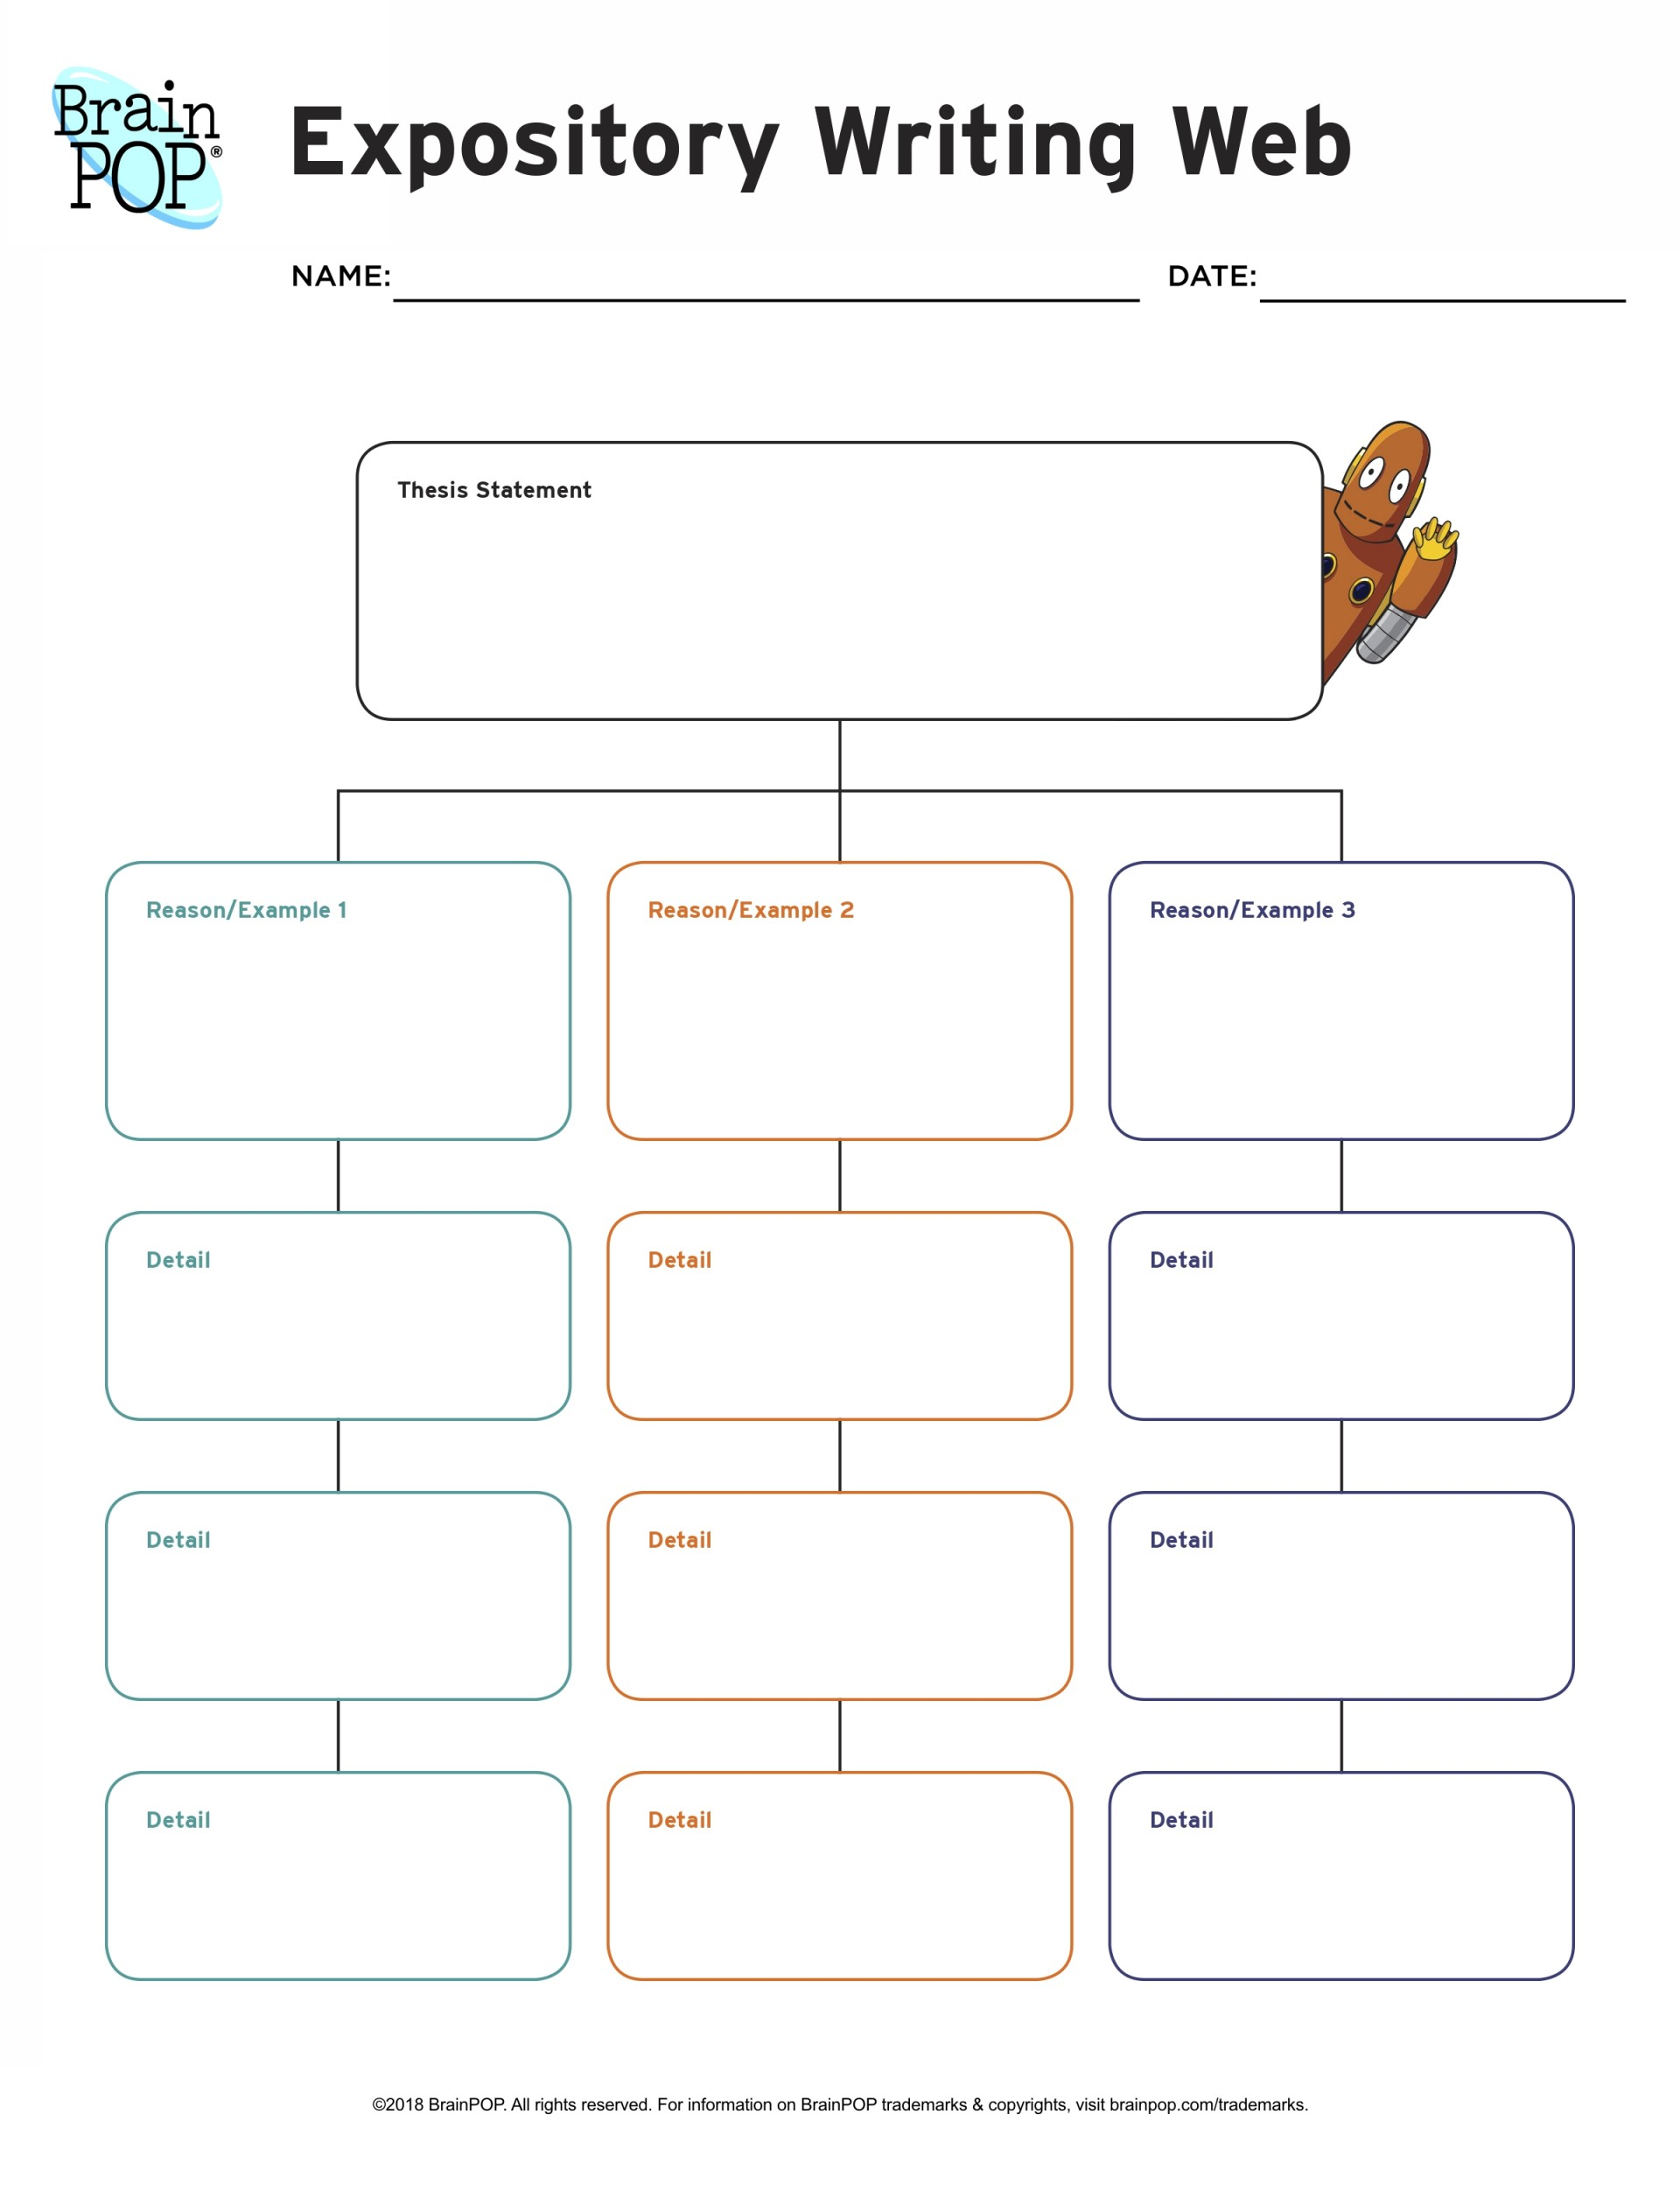 012 Argumentative Essay Graphic Organizer Ell Reading And Writing Organizers Brainpop Educators Throughout Paragraph Incredible For Middle School Pdf 1920